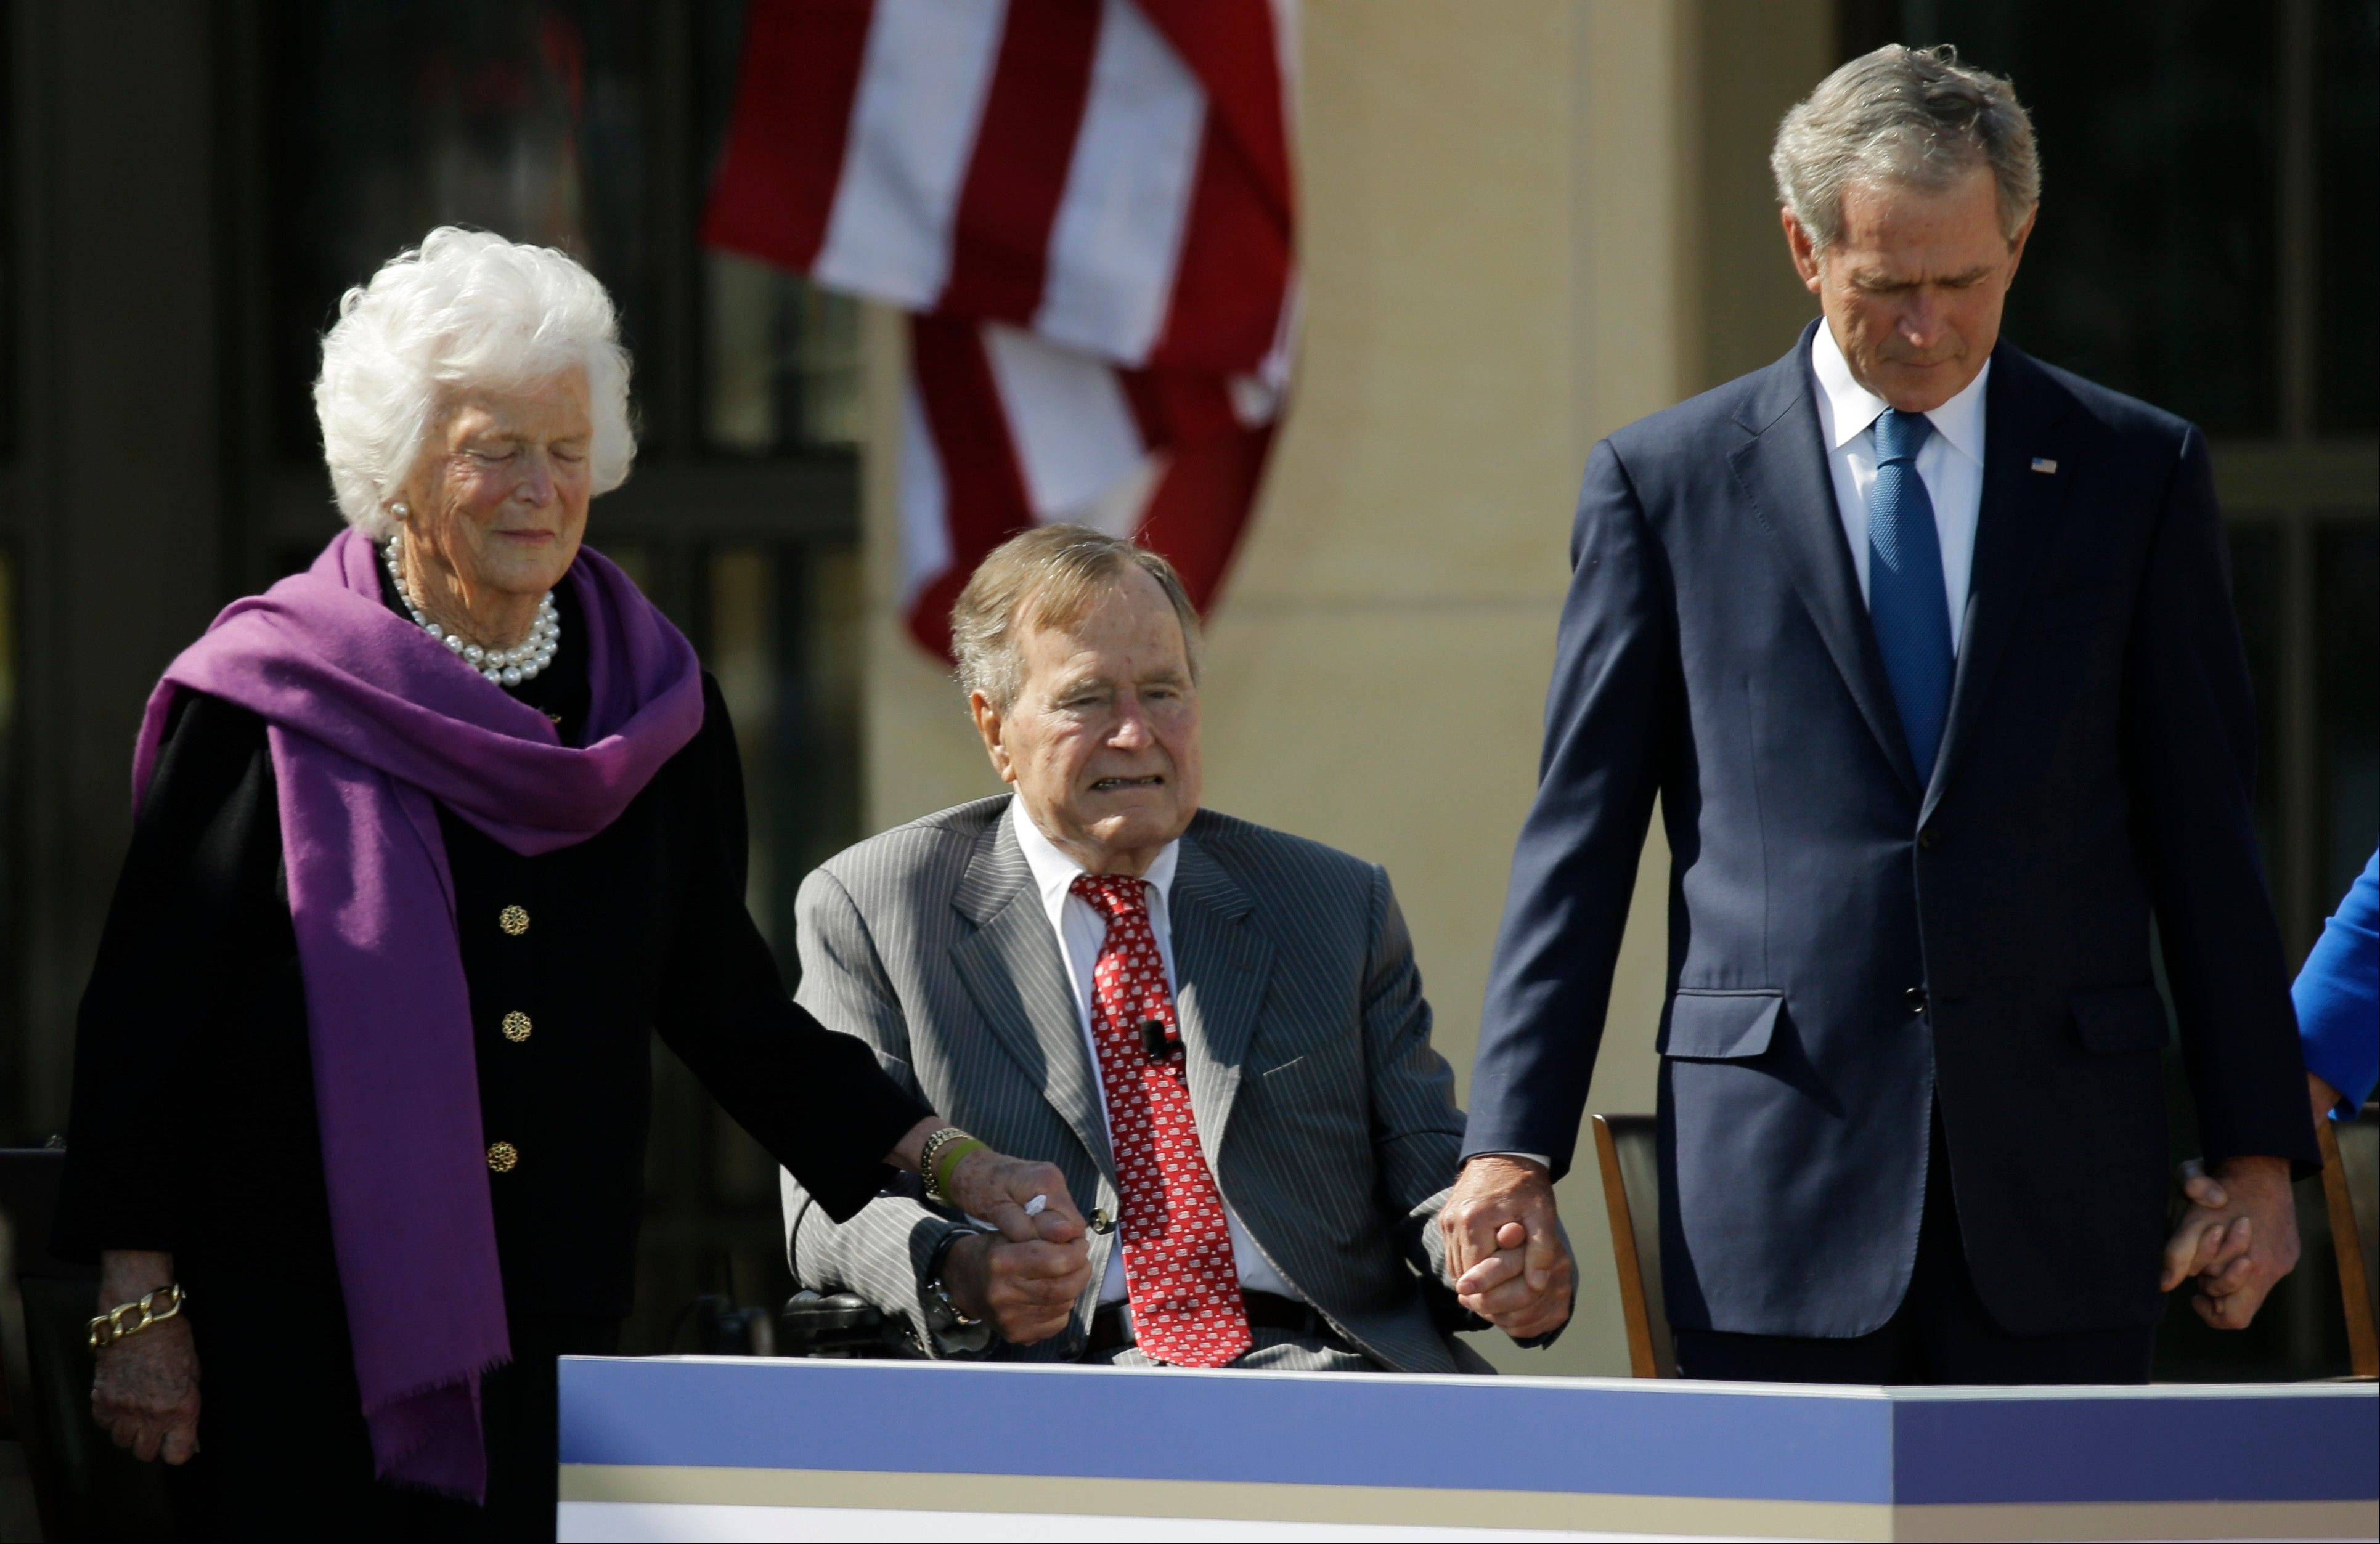 From left, former first lady Barbara Bush, President George H.W. Bush and former President George W. Bush hold hands during the invocation during the dedication of the George W. Bush Presidential Center Thursday, April 25, 2013, in Dallas.